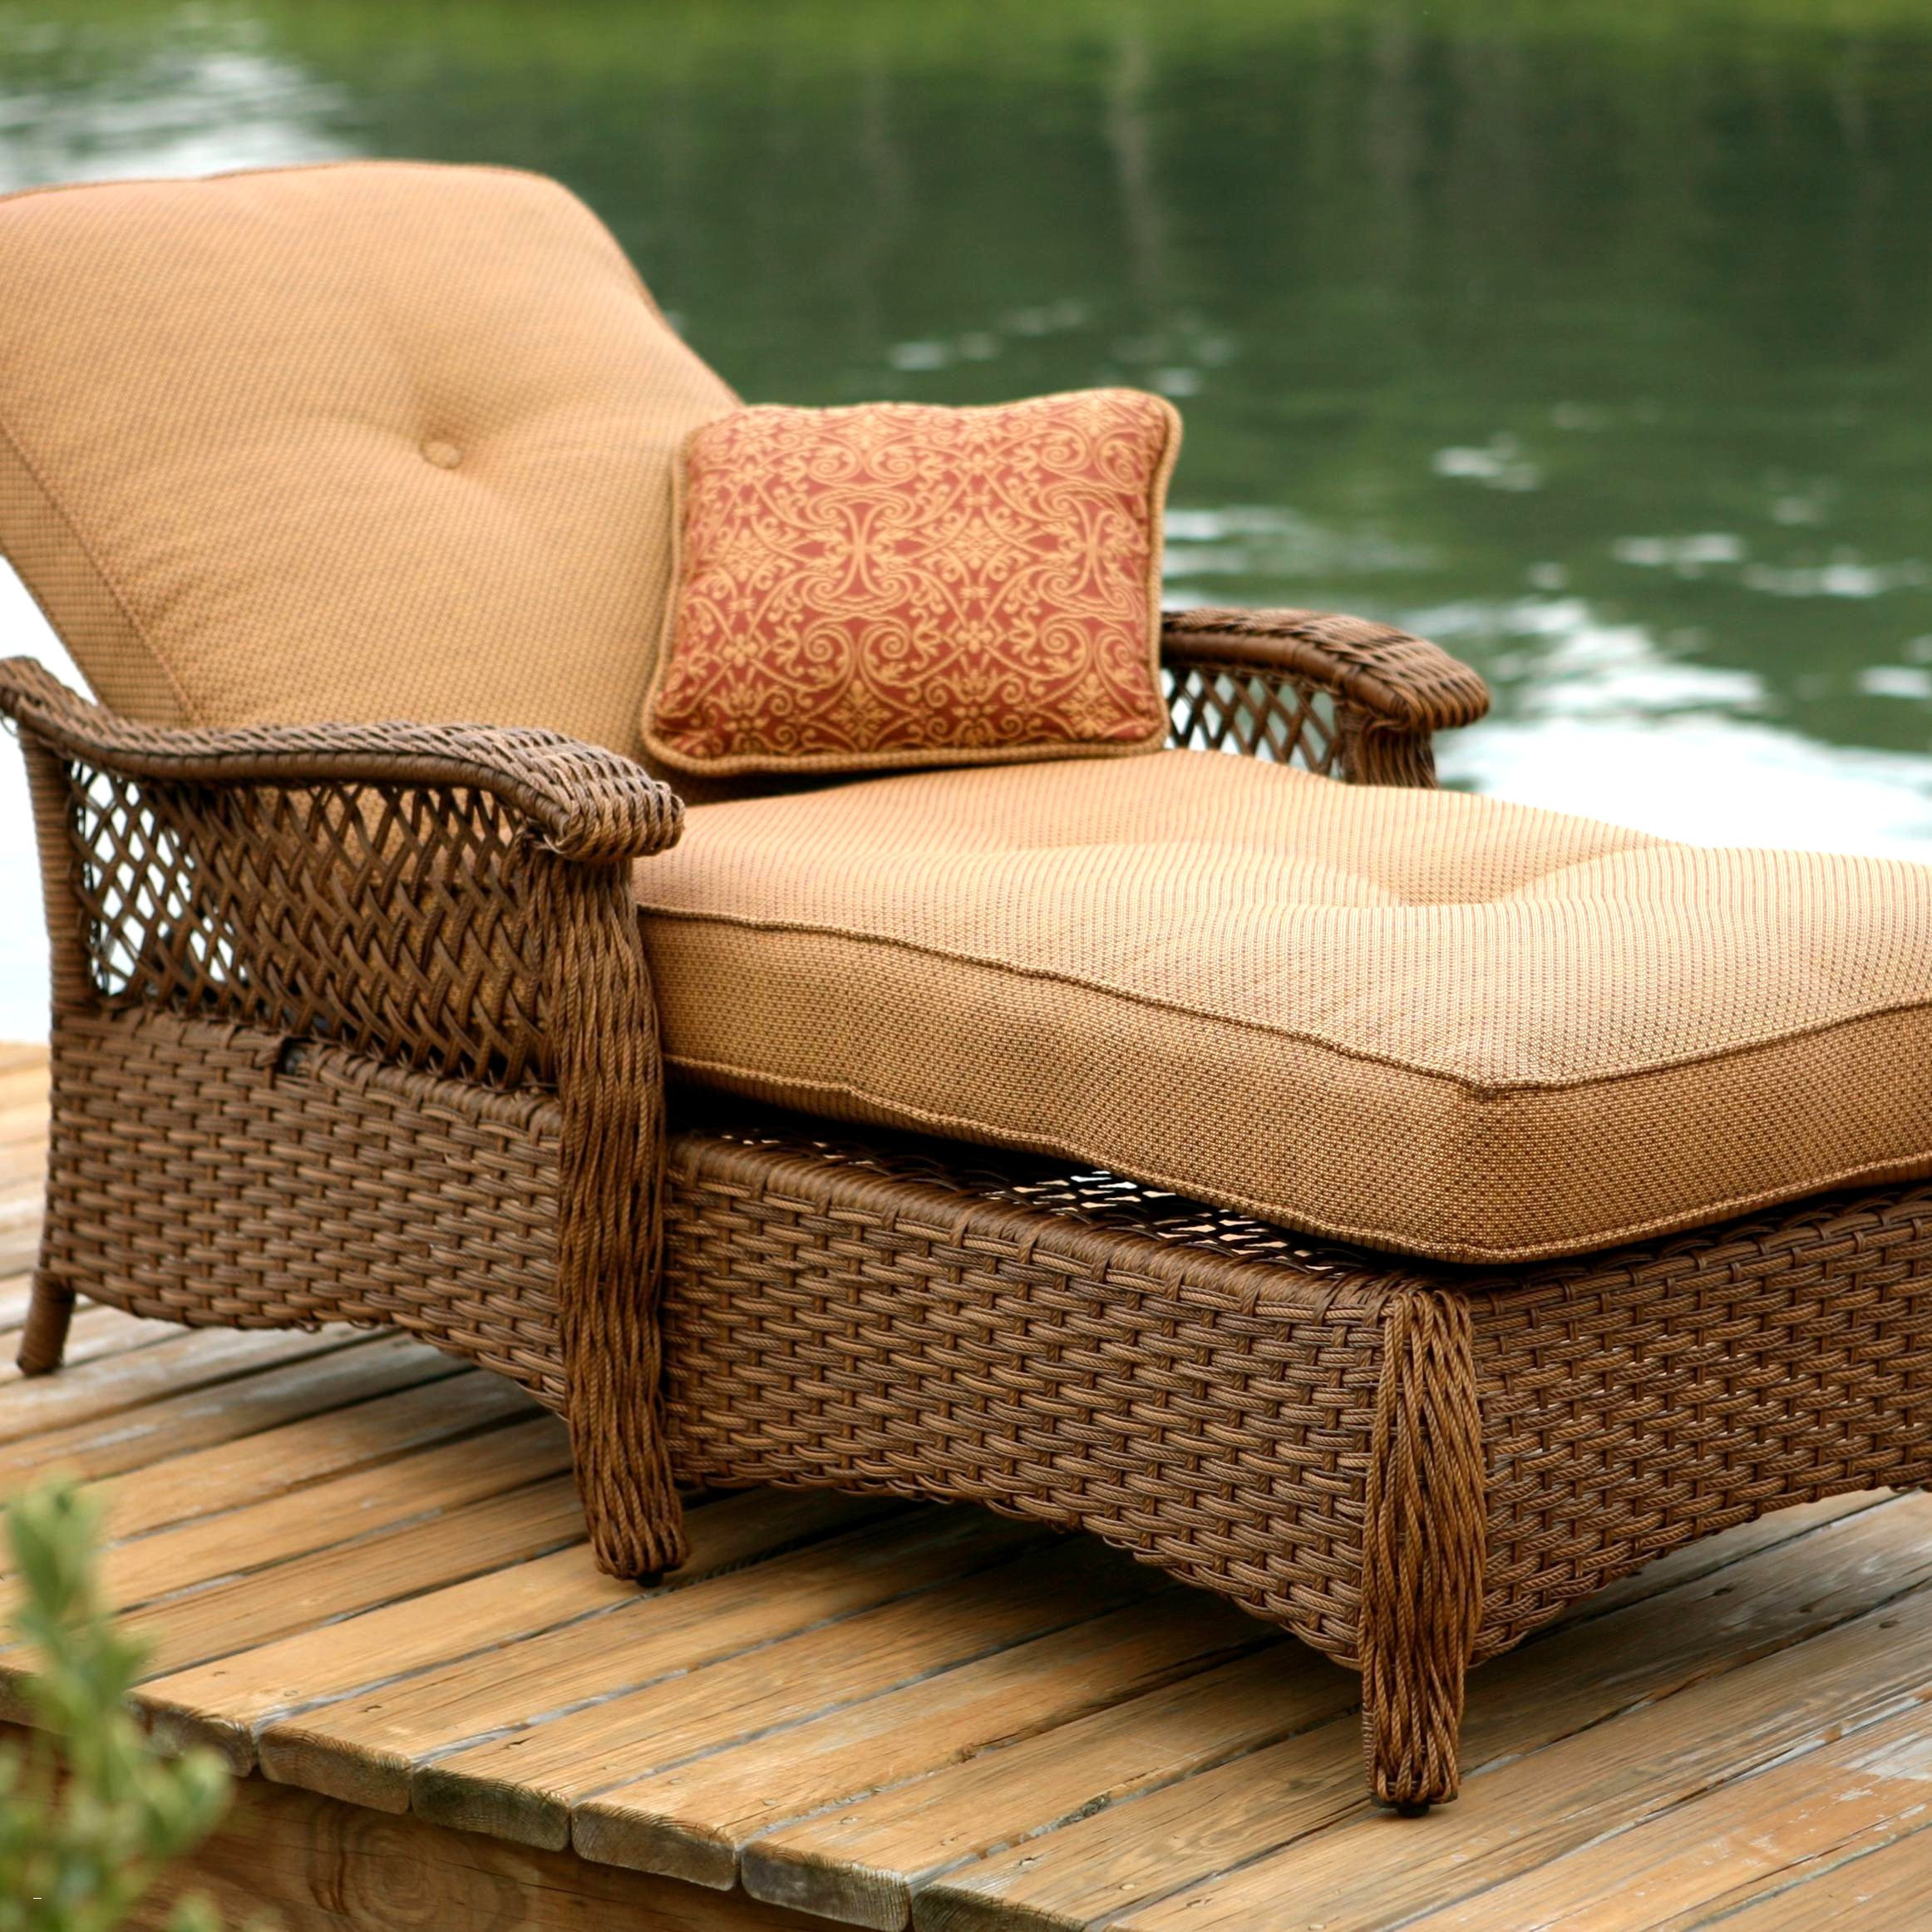 Large Wicker Vase Of Large Coffee Table Ideas Fresh Beautiful Patio Couches for Sale 17 with Regard to Large Coffee Table Ideas Fresh Beautiful Patio Couches for Sale 17 Exciting Wicker Outdoor sofa 0d